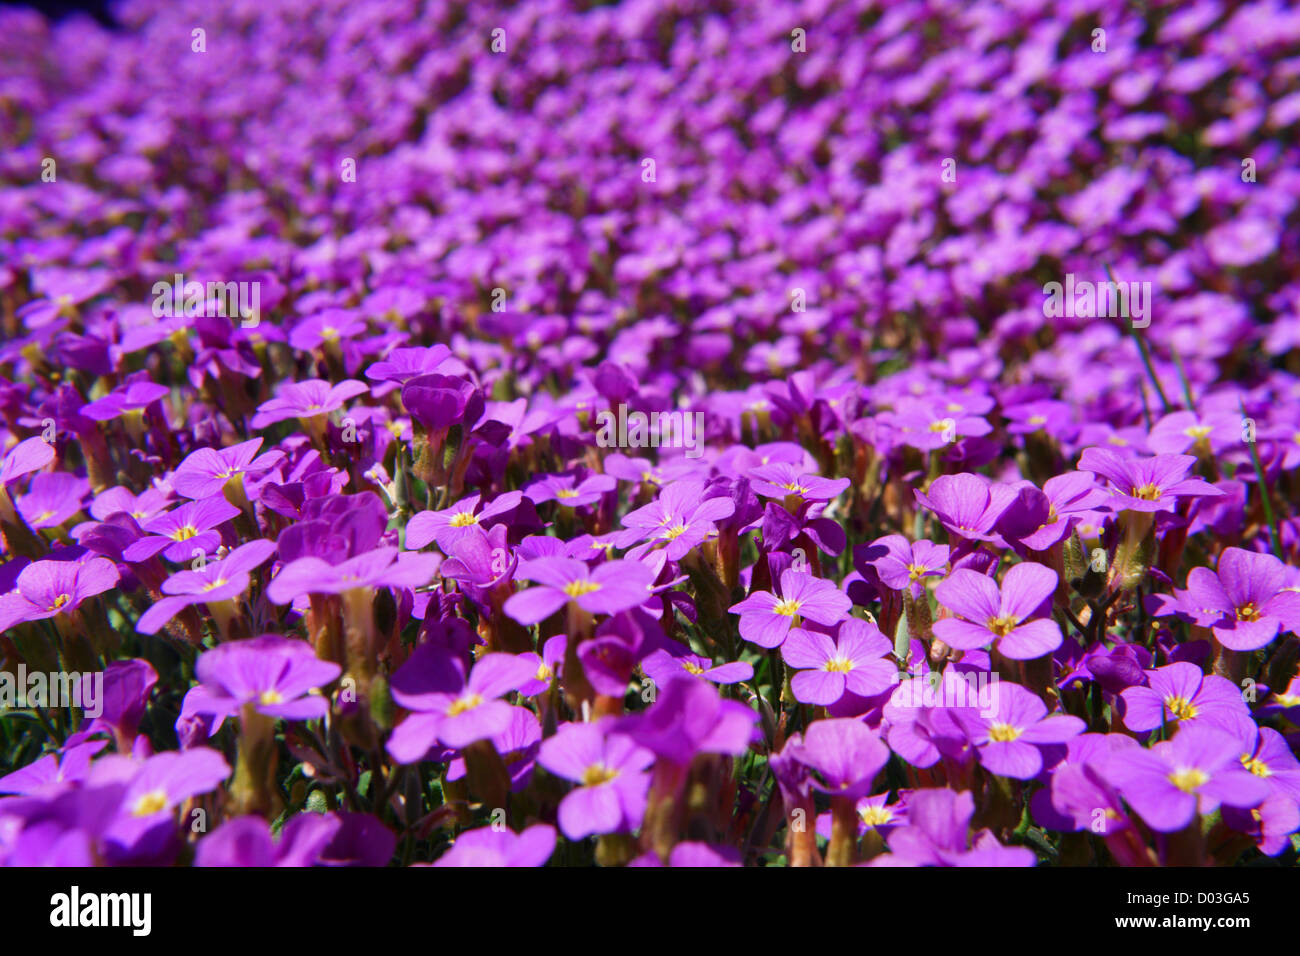 Close-up of some violett flowers sea of flowers - Stock Image